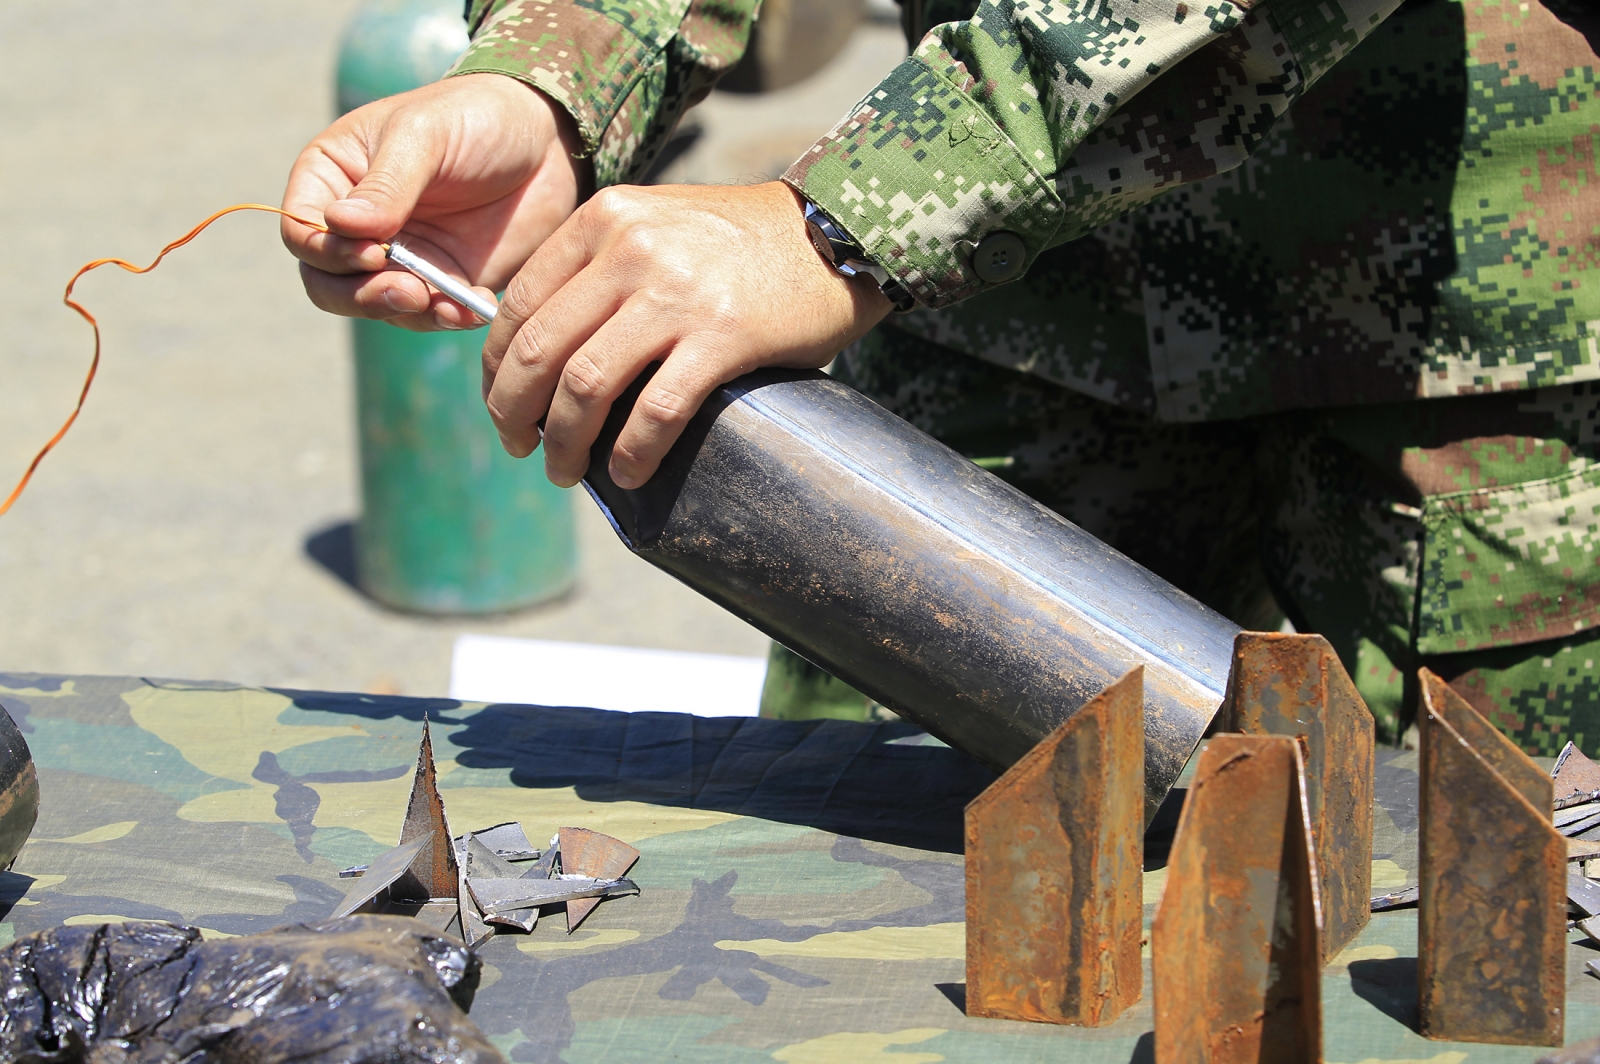 Colombia Farc Mine Arm